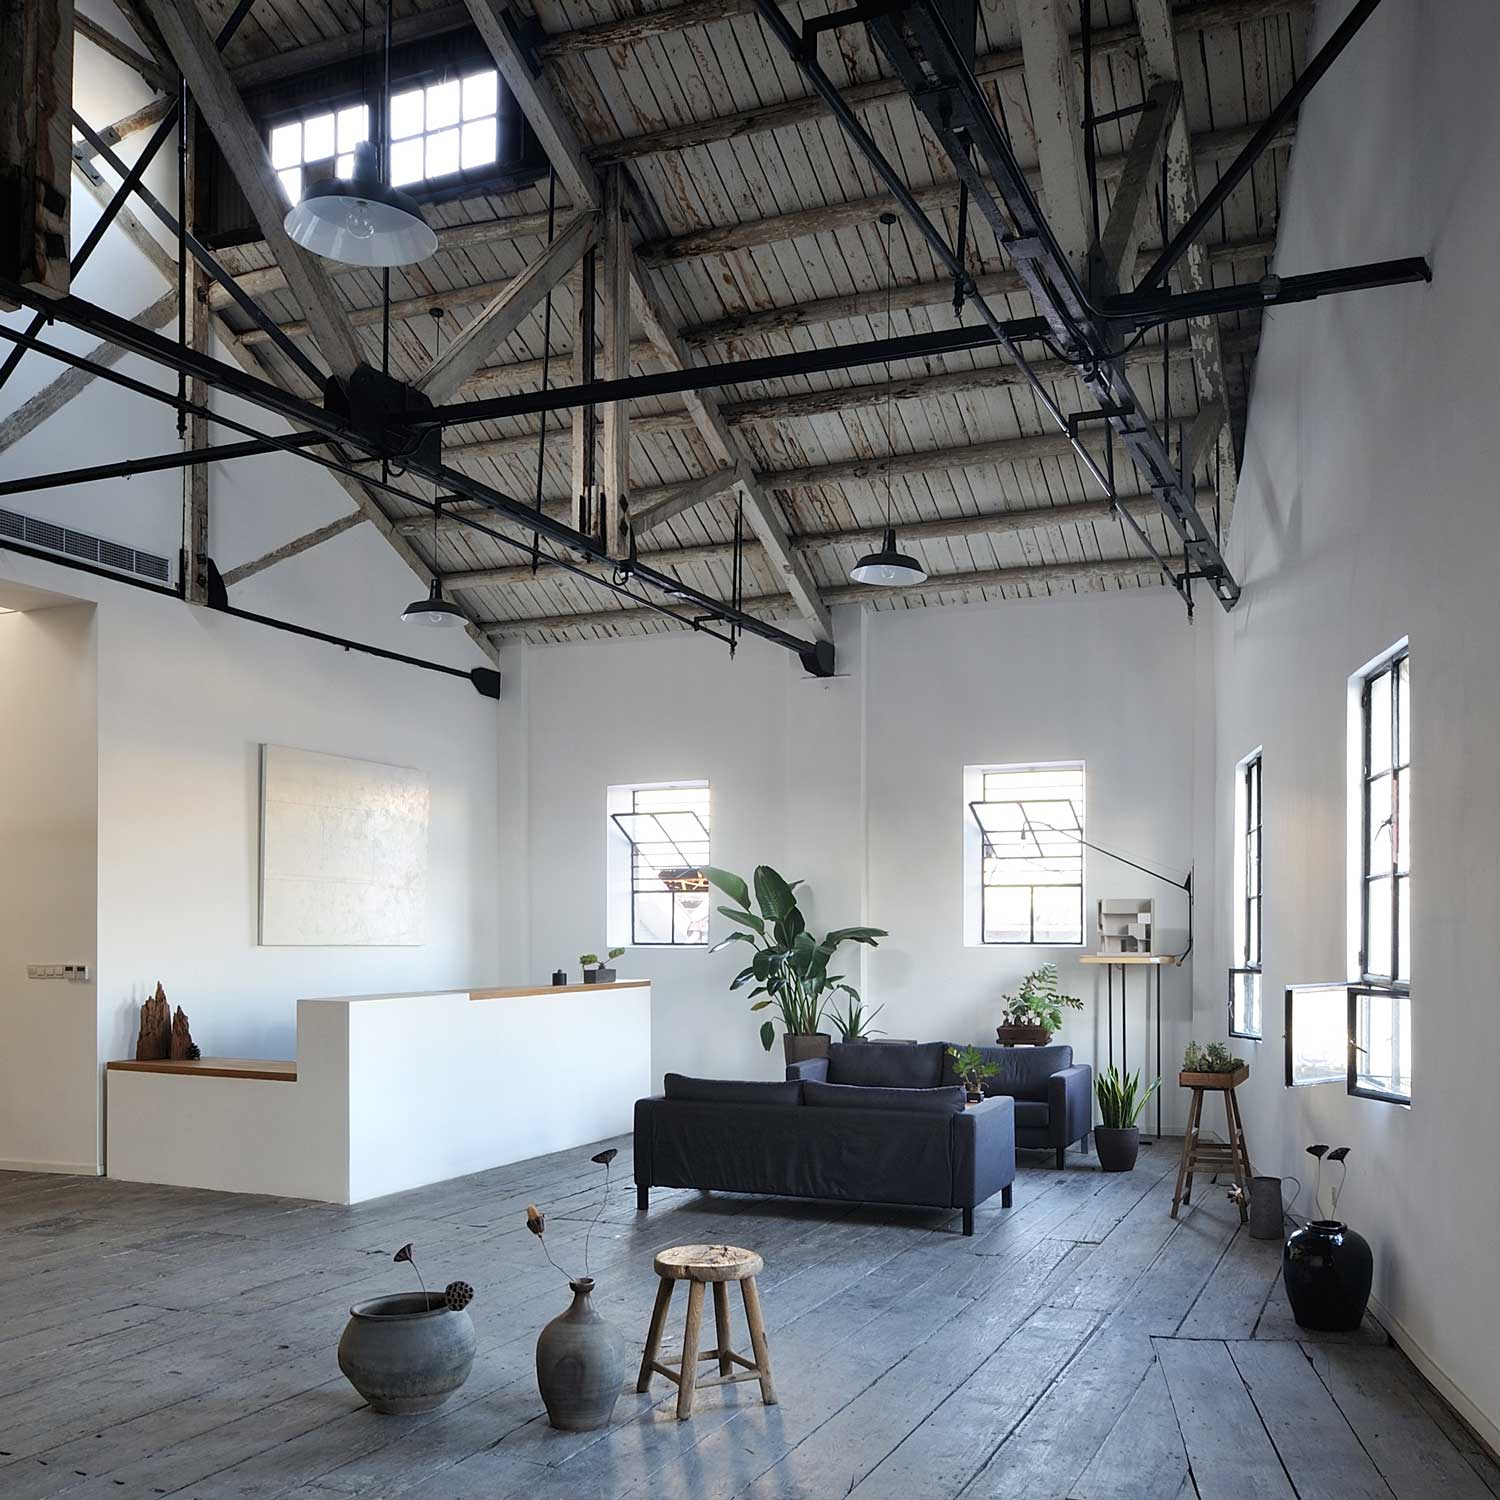 Waimatou Co-working Loft by Natural Build Operation in Shanghai China | Yellowtrace